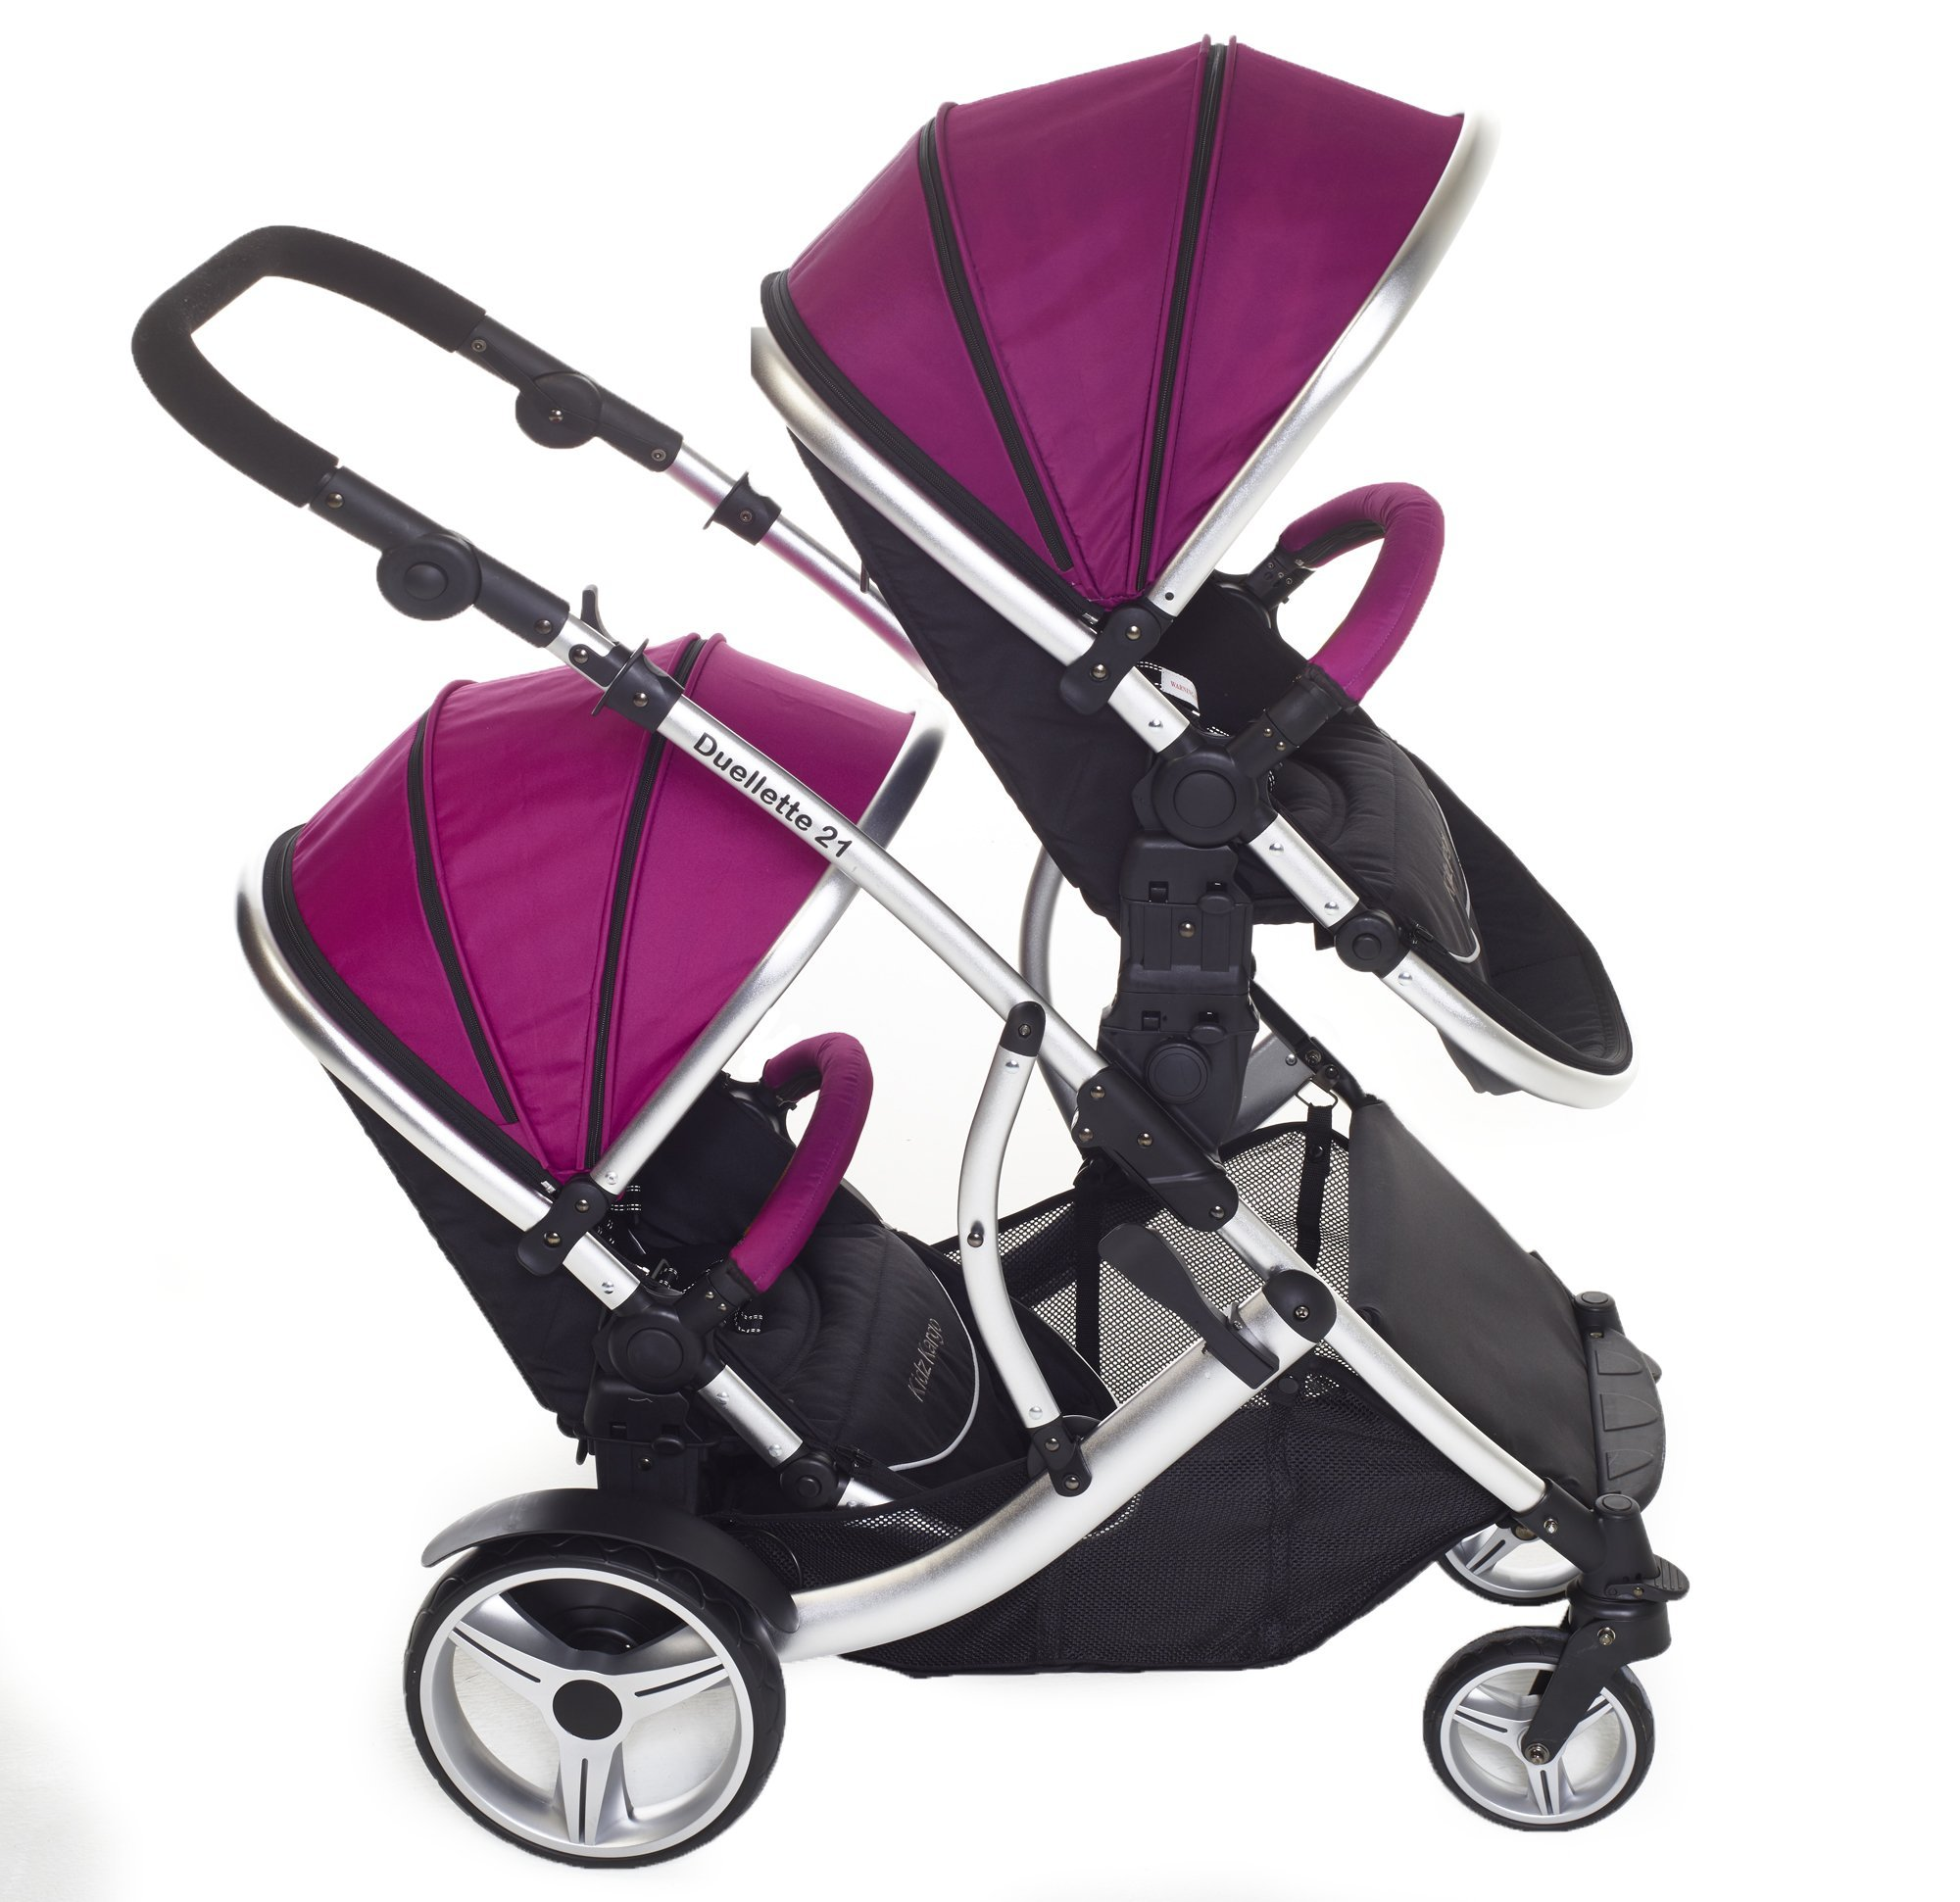 Duellette 21 BS Twin Double Pushchair Stroller Buggy (Raspberry) Brand New Colour Range! Kids Kargo Suitability Newborn Twins (if used with car seats) or Newborn/toddler. Various seat positions. Both seats can face mum (ideal for twins) Accommodates 1 or 2 car seats 4